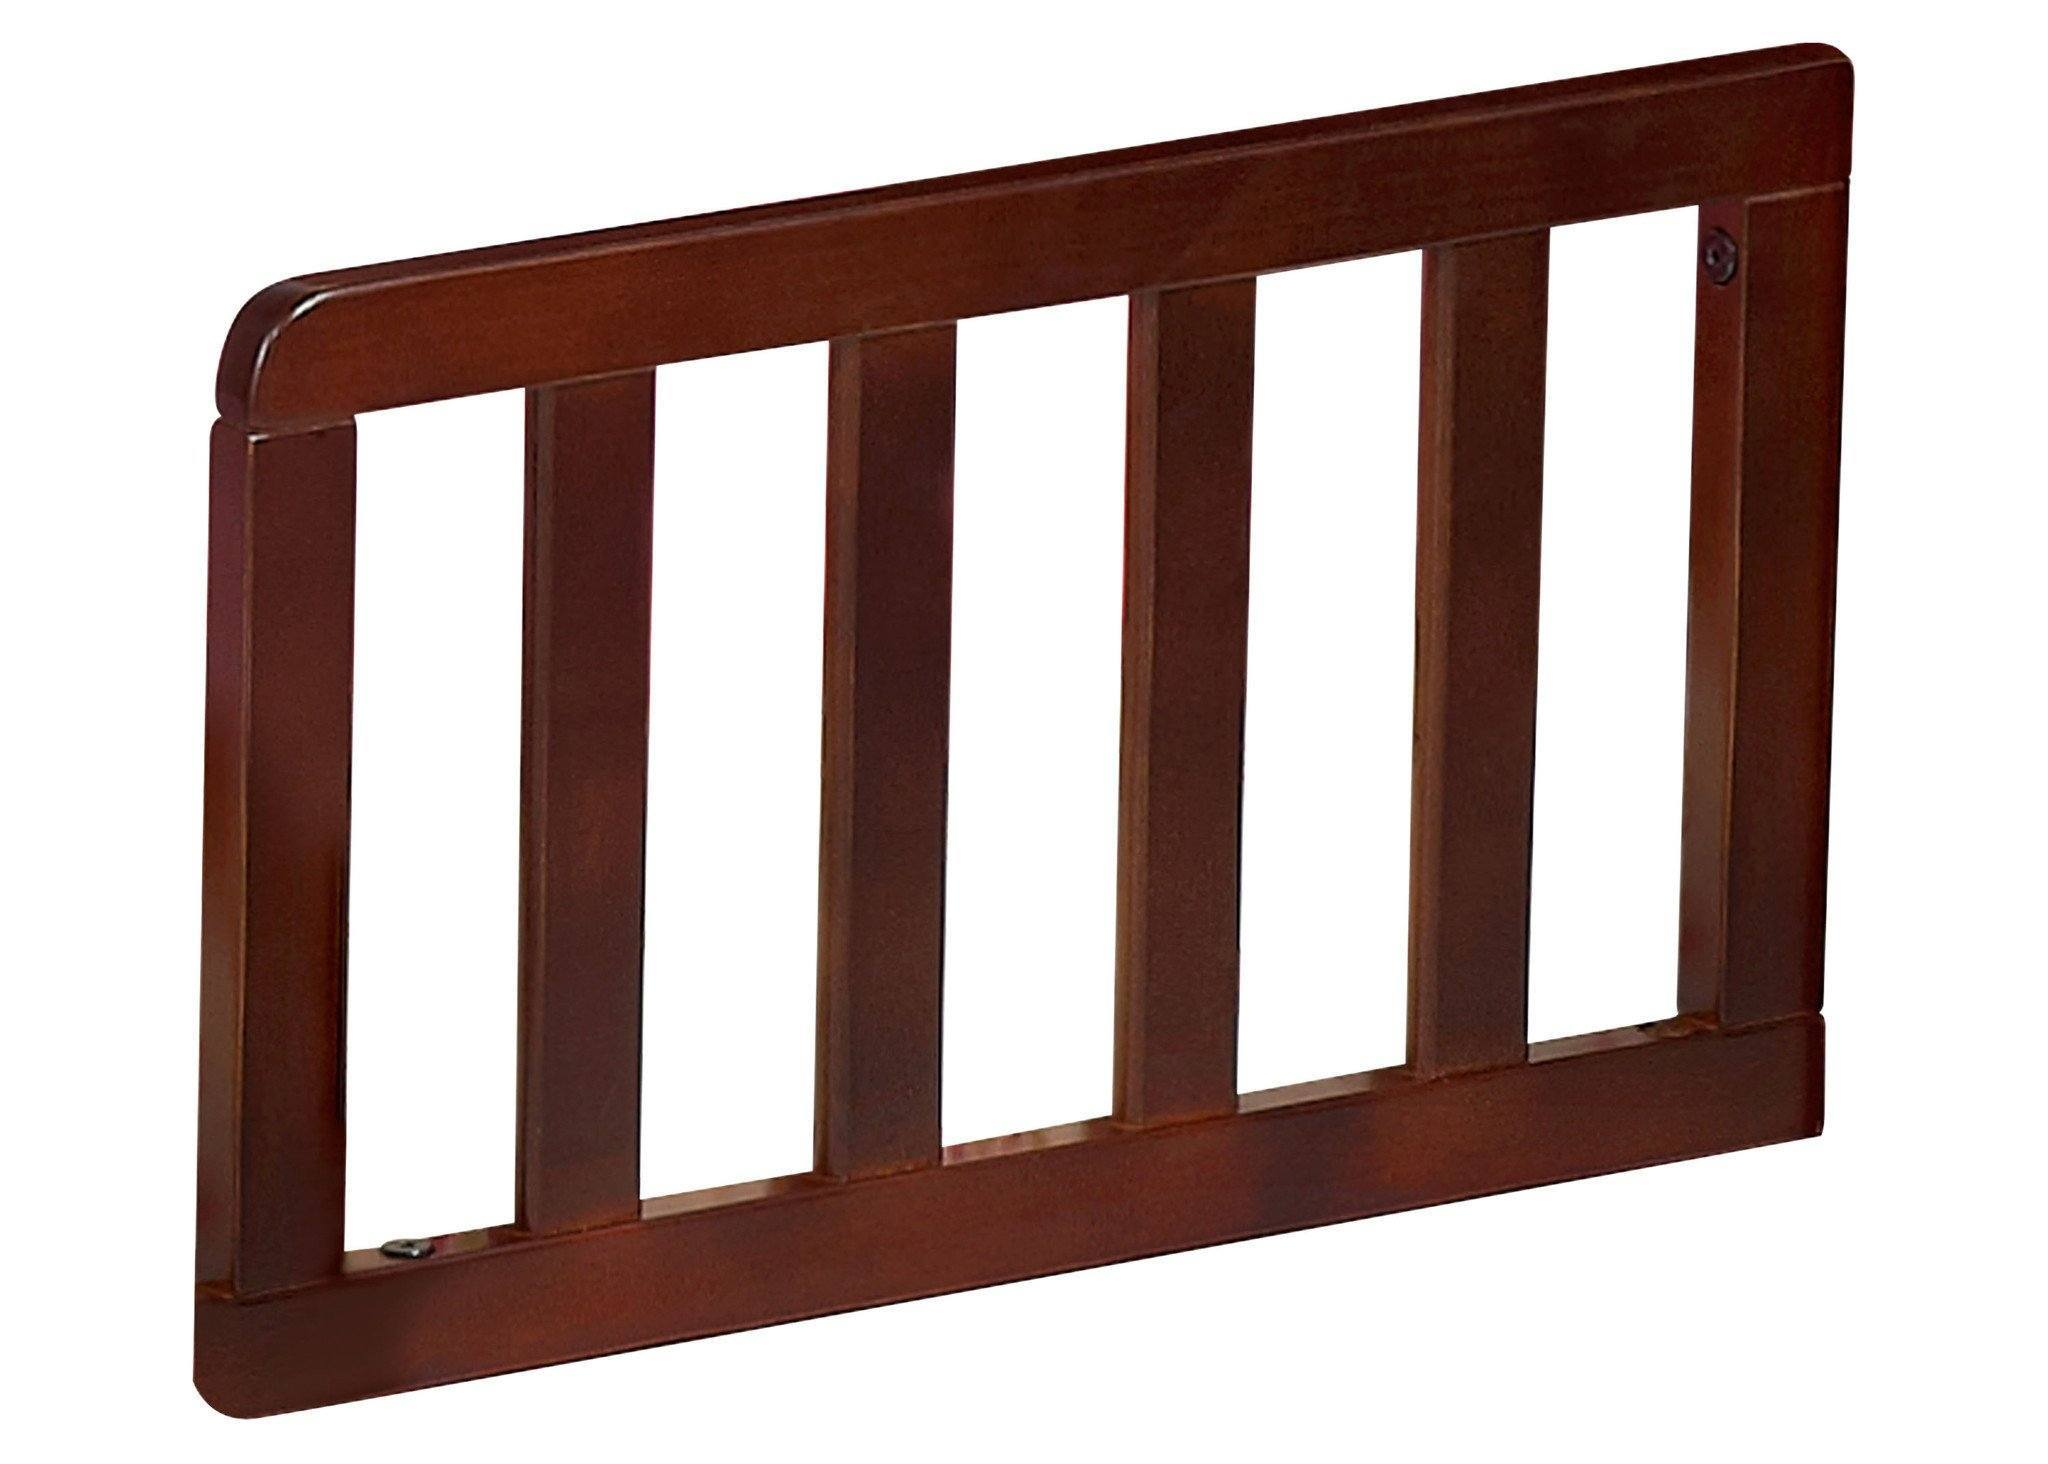 Simmons Kids LaBrosse Cherry (602) Toddler Guardrail Side View b1b